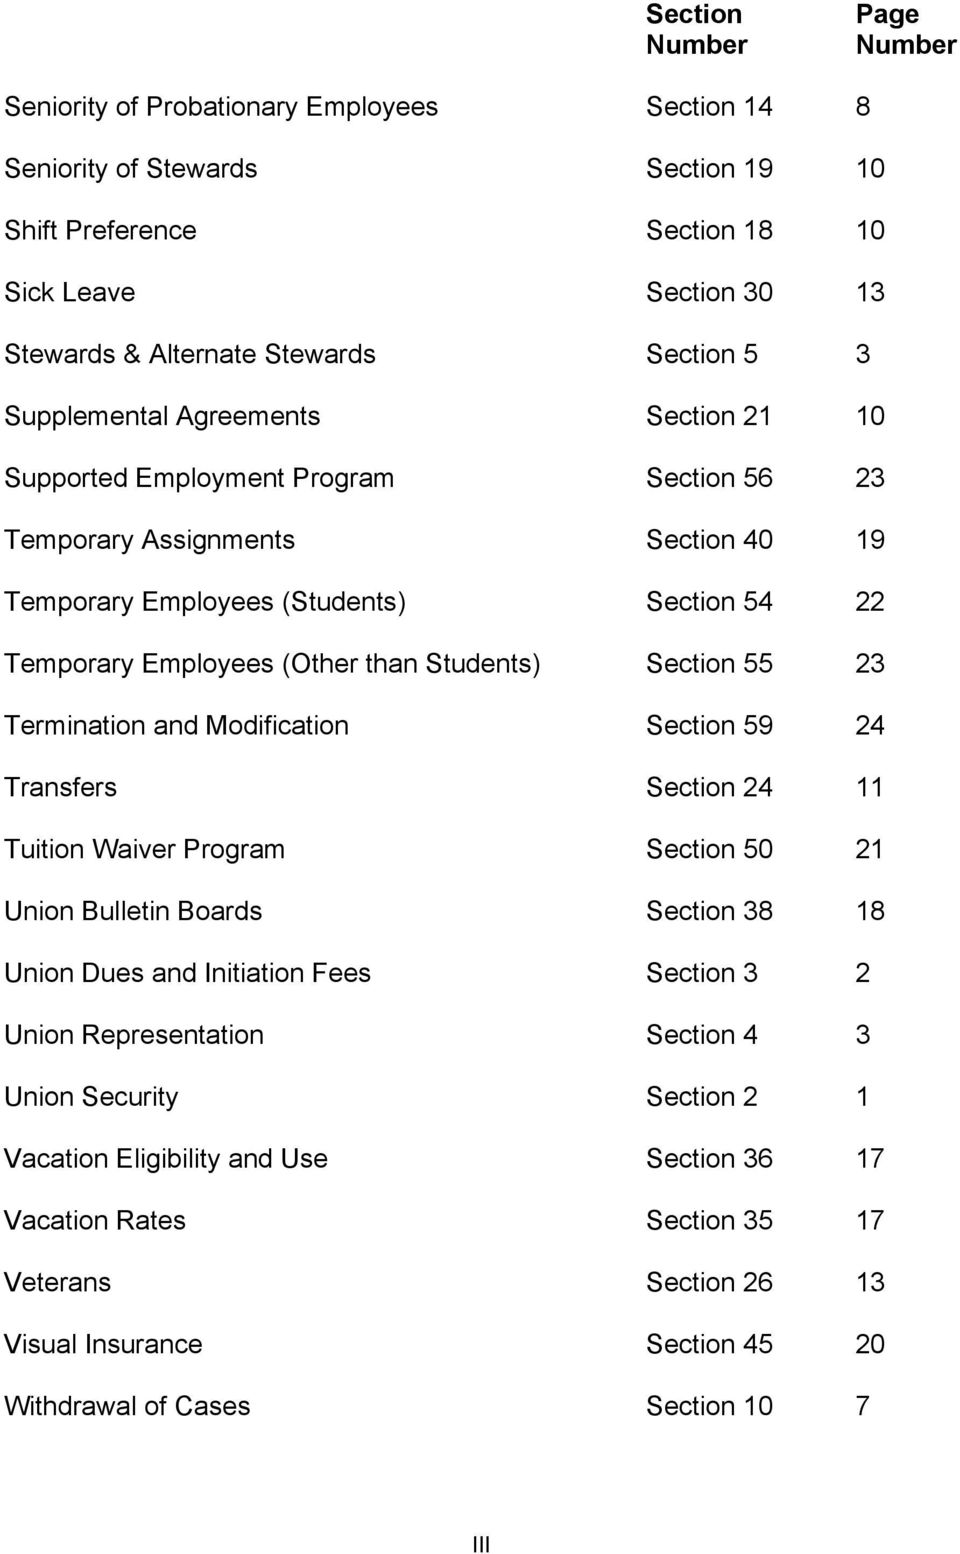 (Other than Students) Section 55 23 Termination and Modification Section 59 24 Transfers Section 24 11 Tuition Waiver Program Section 50 21 Union Bulletin Boards Section 38 18 Union Dues and